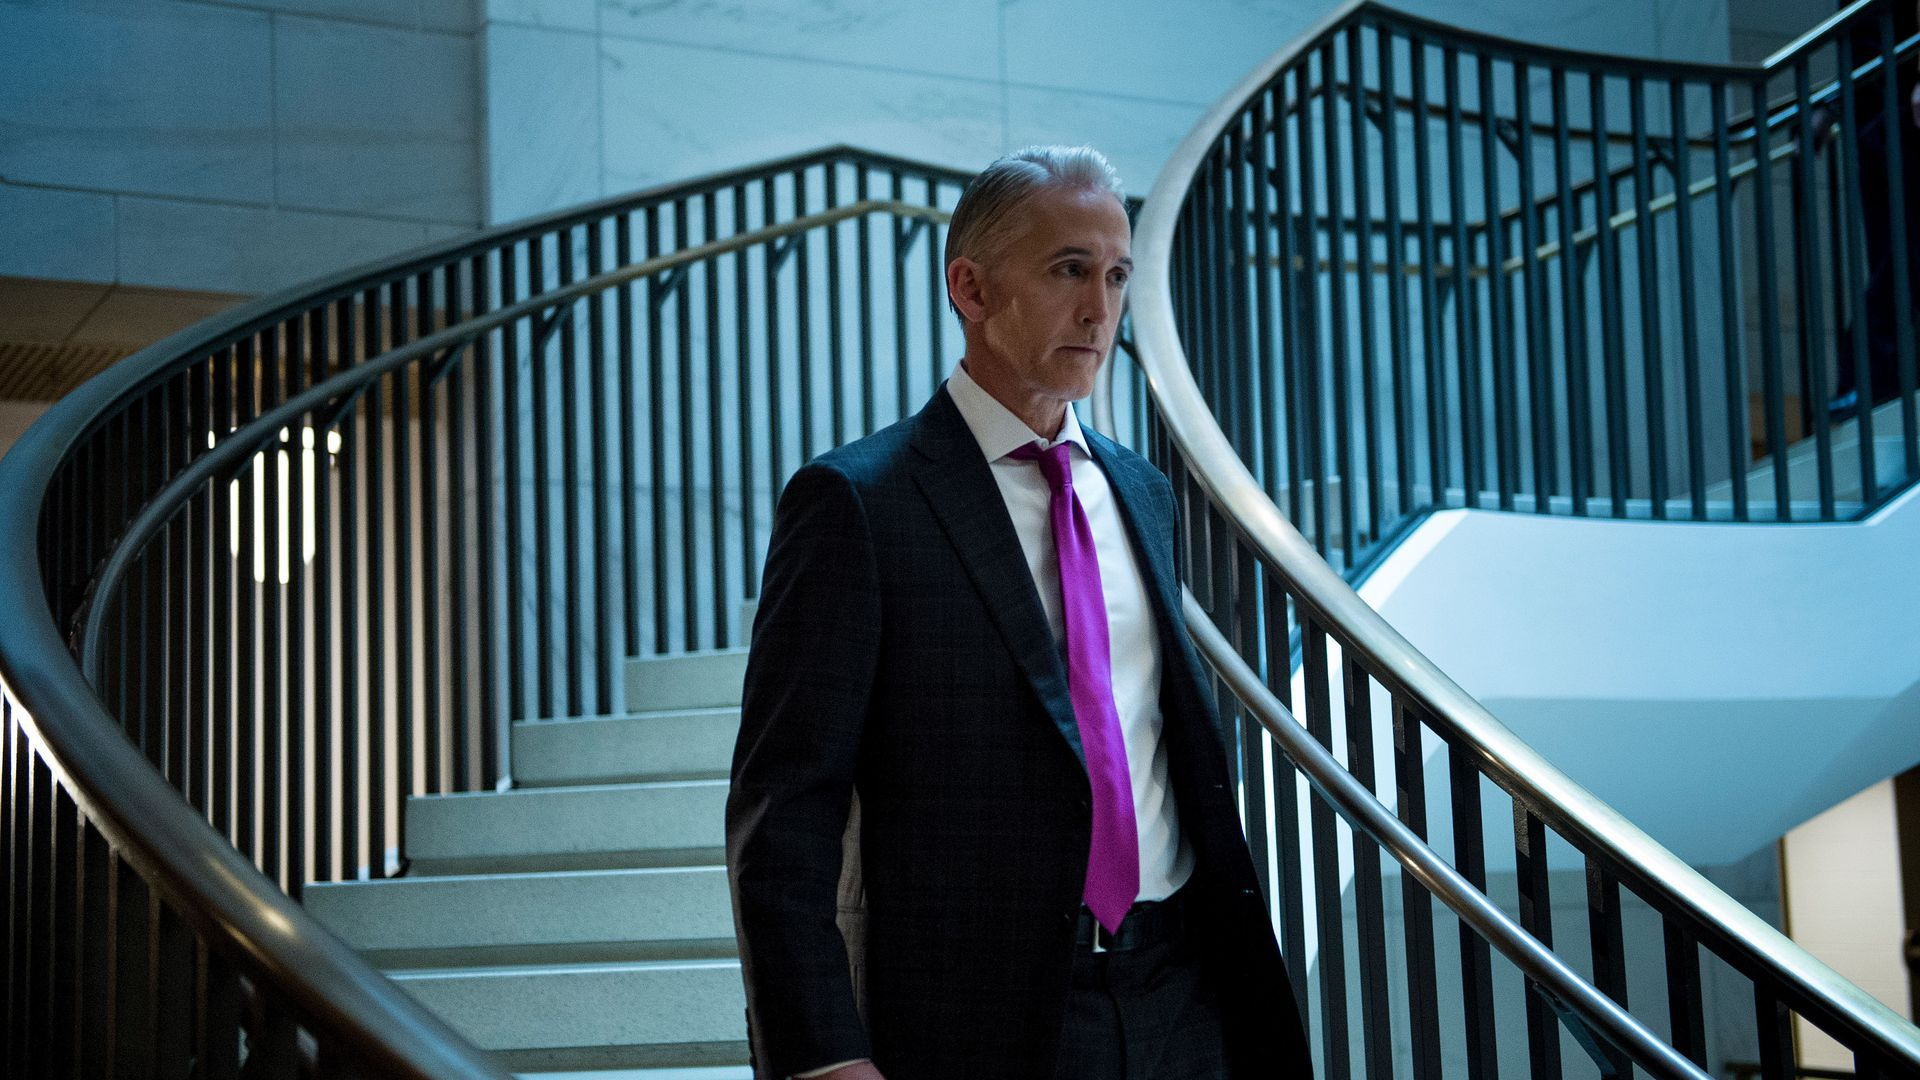 Trey Gowdy walks down a flight of stairs